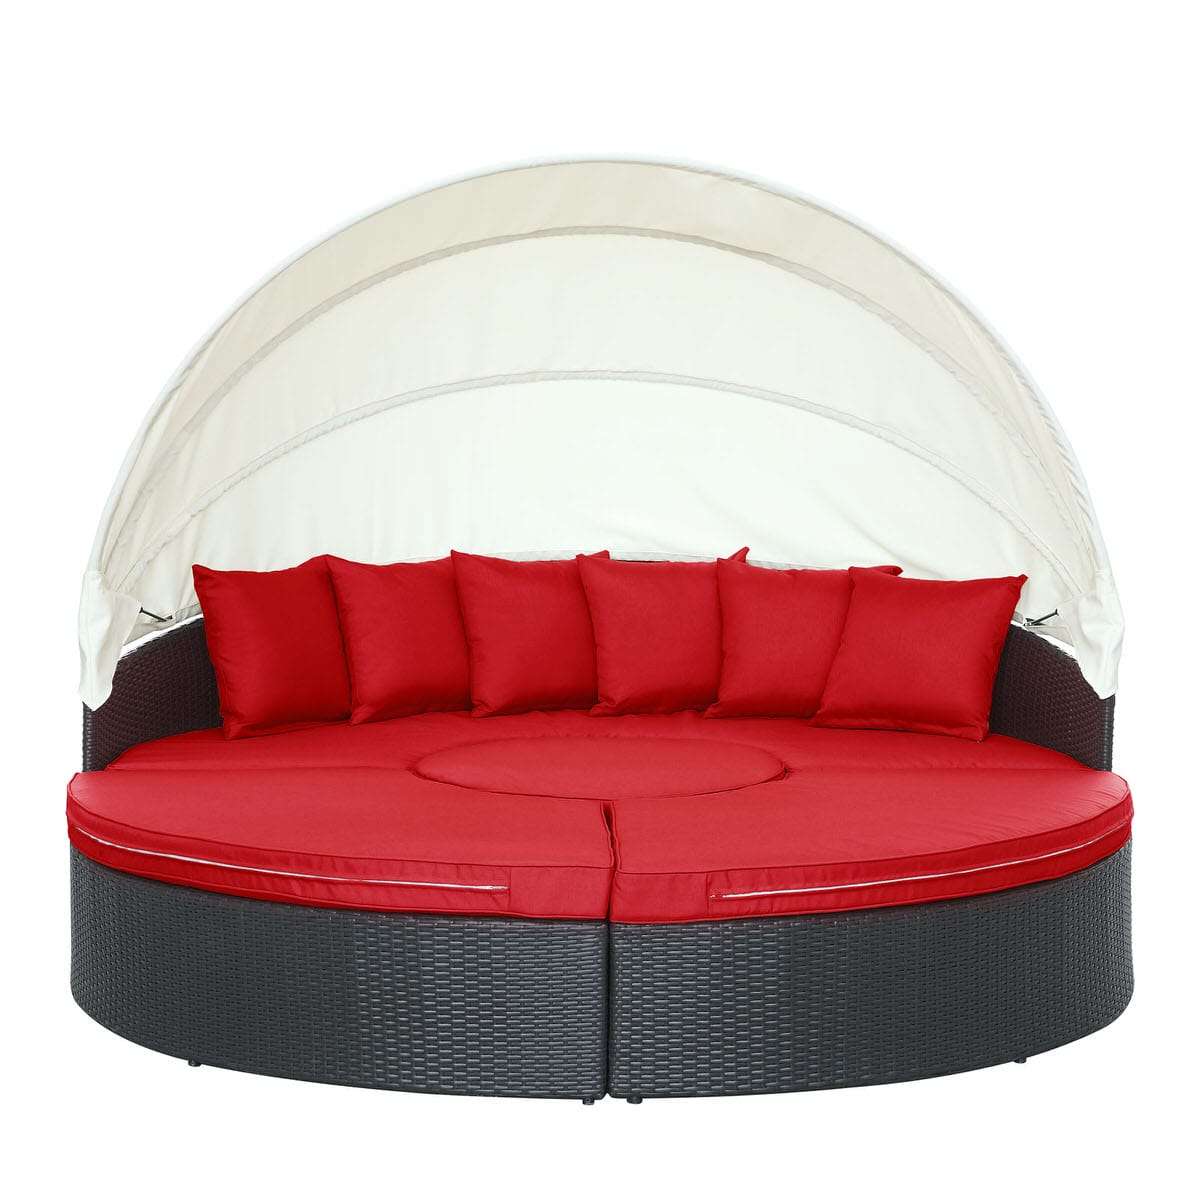 Quest Canopy Outdoor Patio Daybed Espresso Red by Modern Living